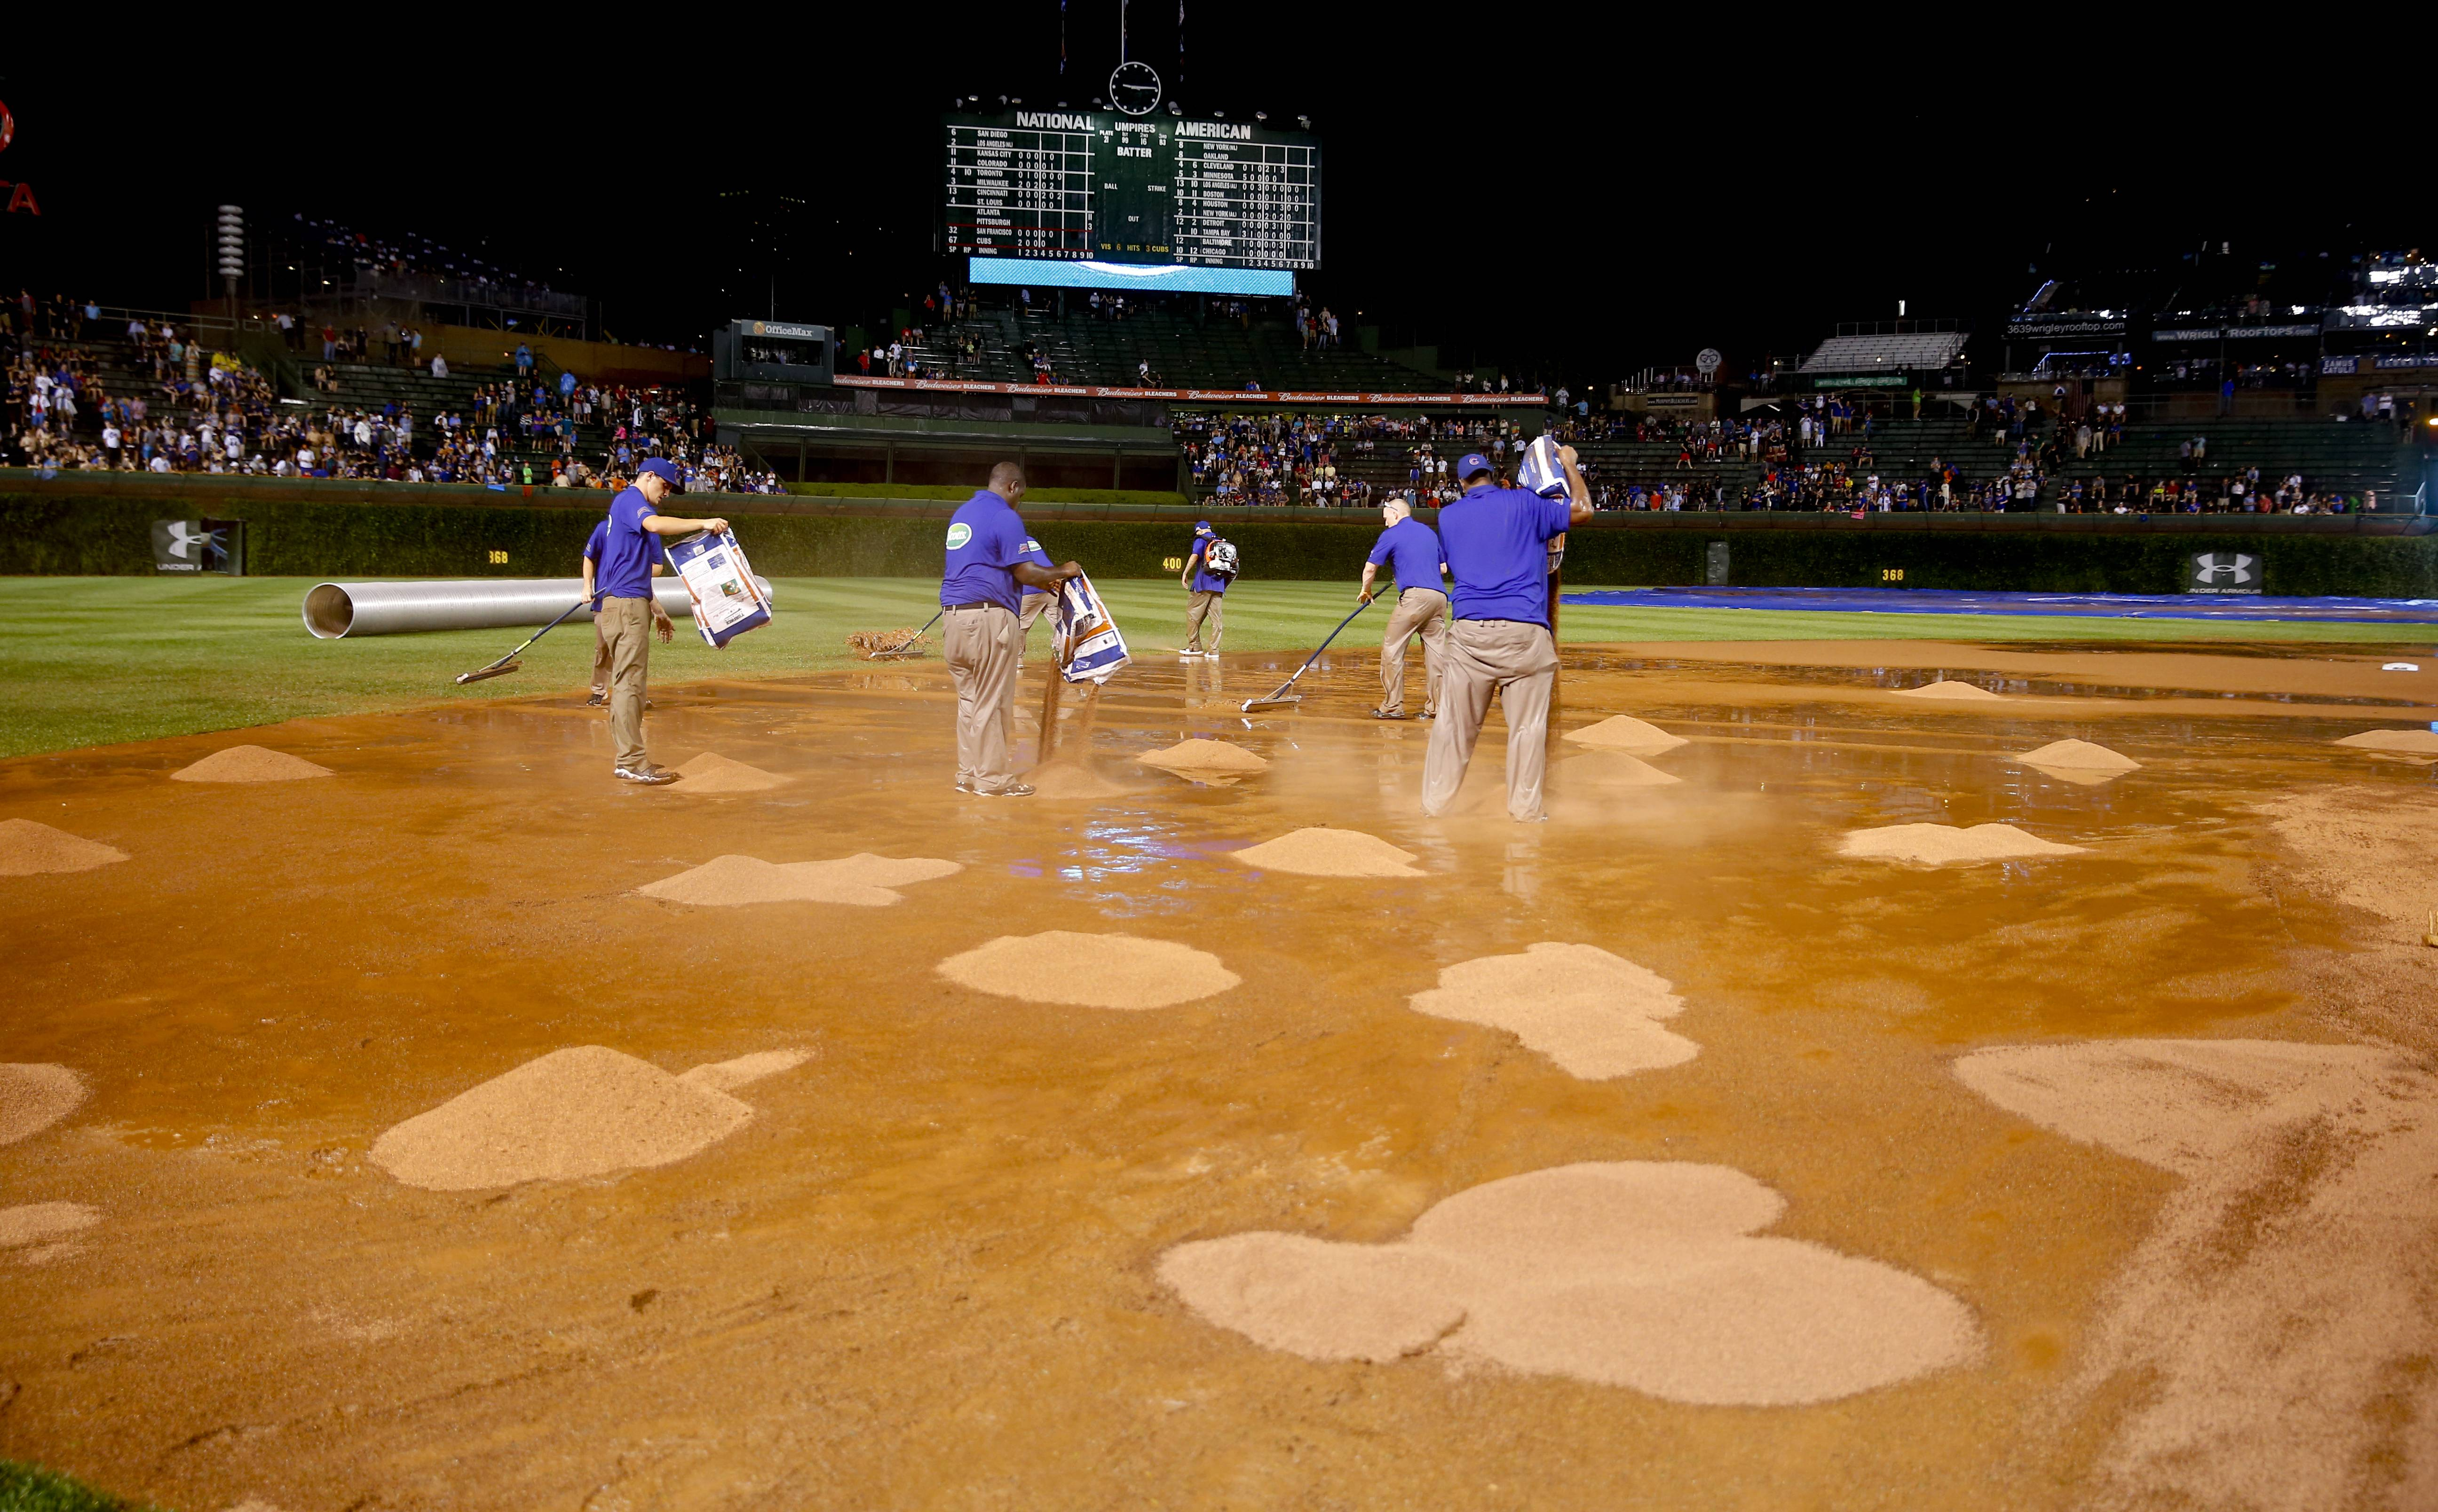 The grounds crew works on the field after a heavy rain soaked Wrigley Field during the fifth inning of a game between the San Francisco Giants and the Chicago Cubs on Tuesday. The game was declared a win early Wednesday morning, but the ruling has been overturned, so the game will be finished today.